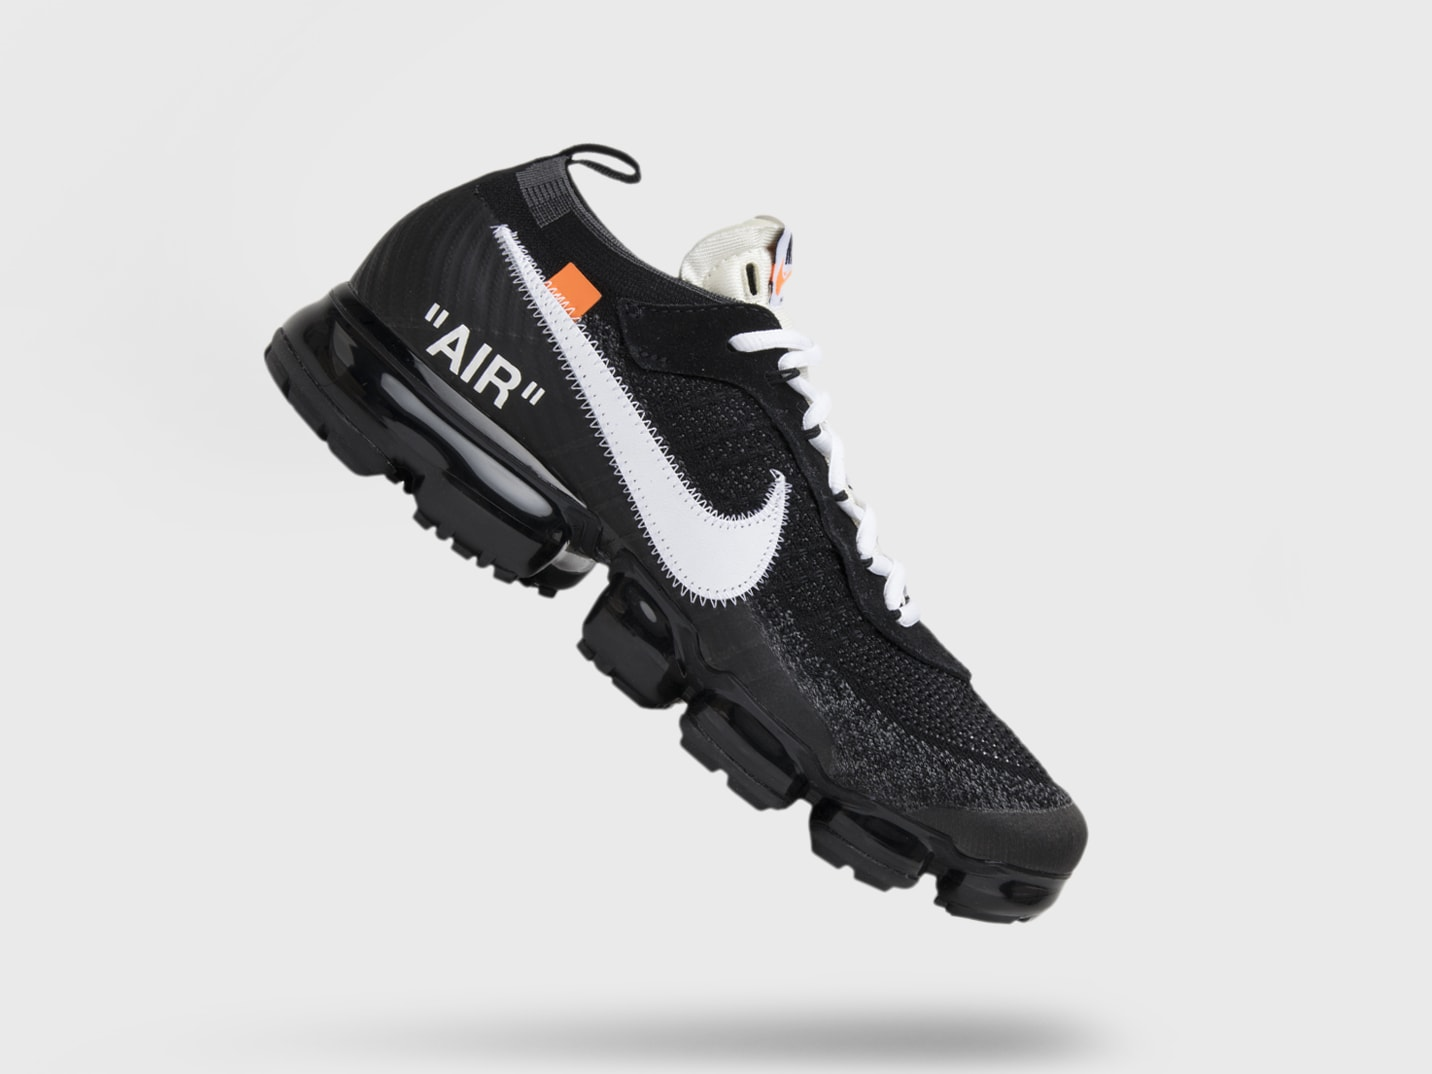 off-white x nike 'the ten'